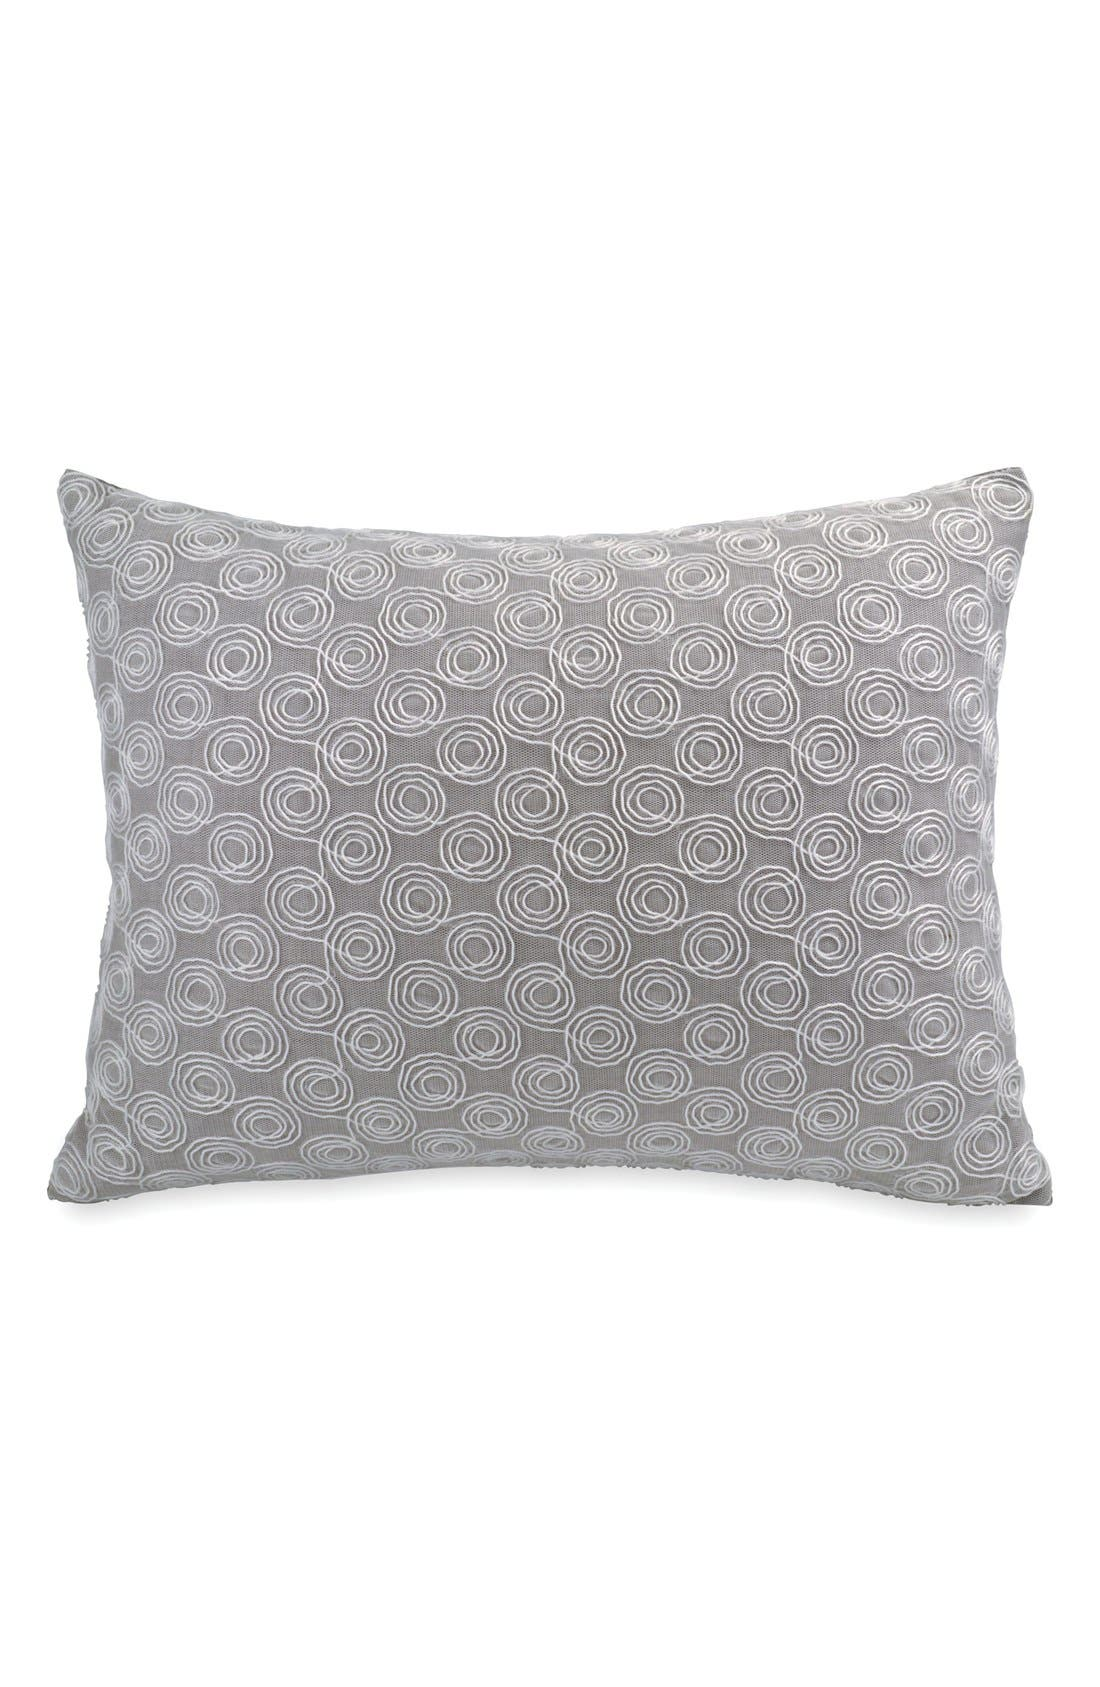 'Loft Stripe' Embroidered Pillow,                             Main thumbnail 1, color,                             020